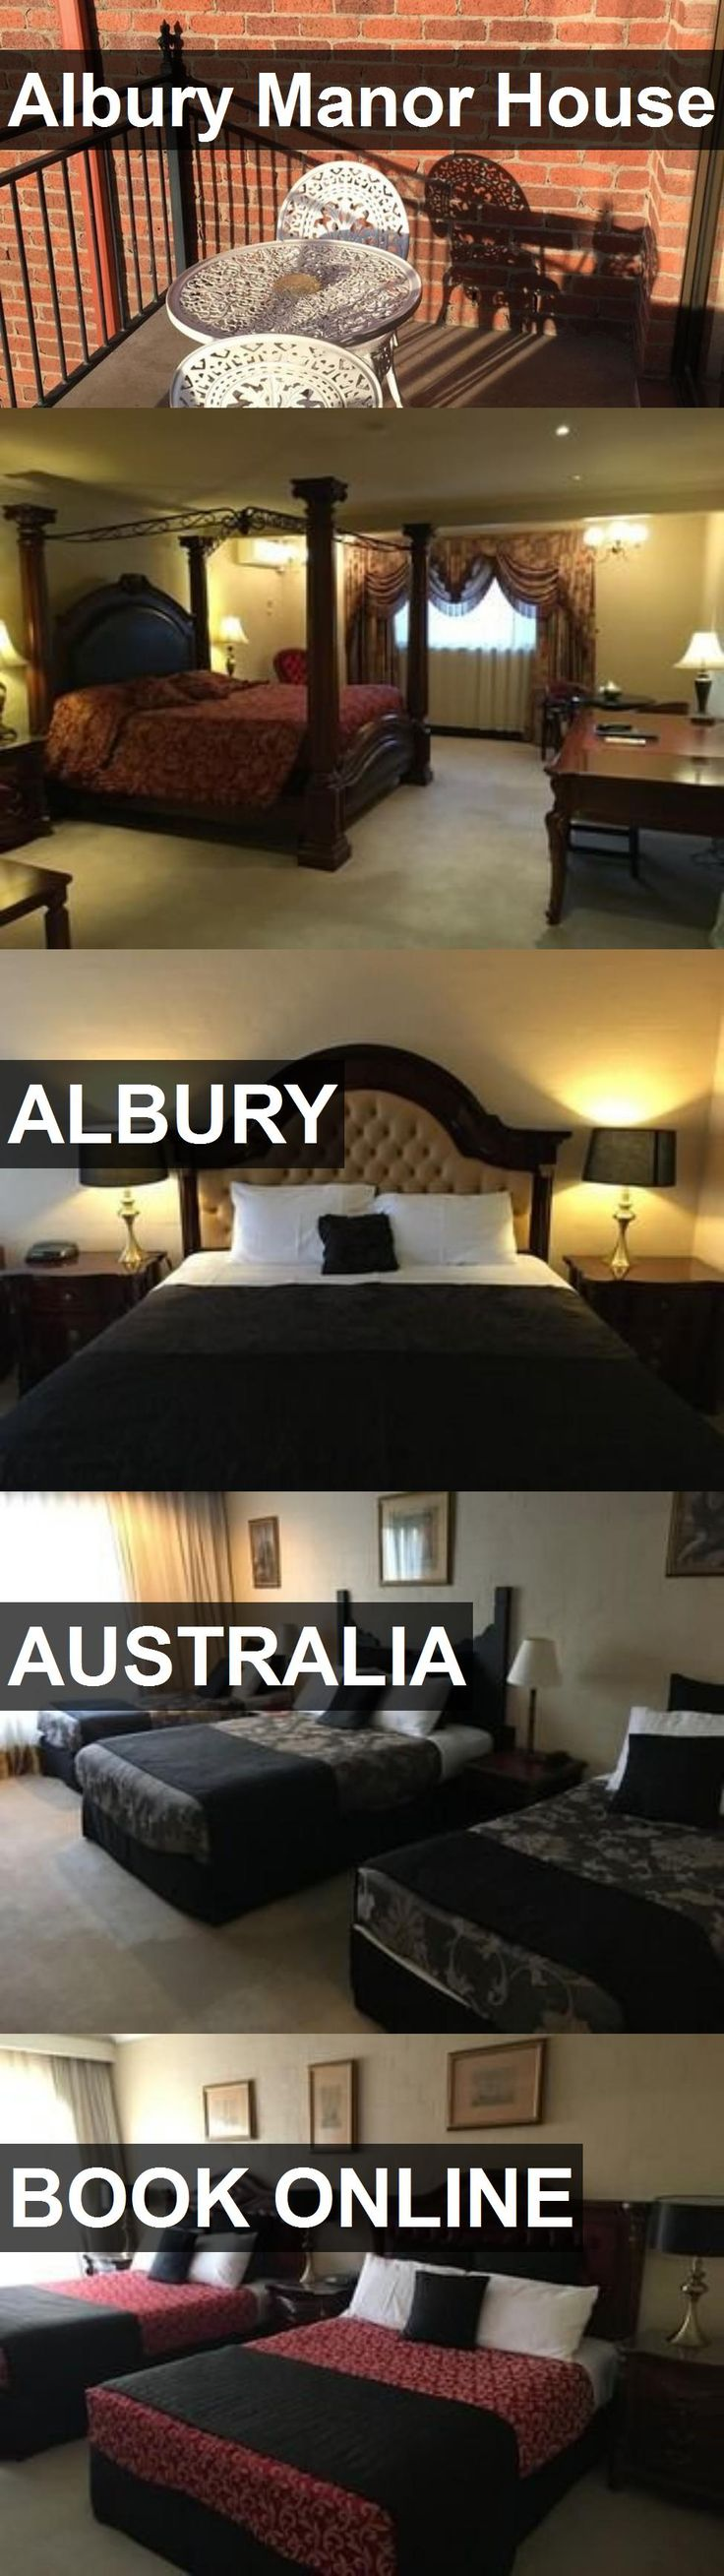 Hotel Albury Manor House in Albury, Australia. For more information, photos, reviews and best prices please follow the link. #Australia #Albury #travel #vacation #hotel